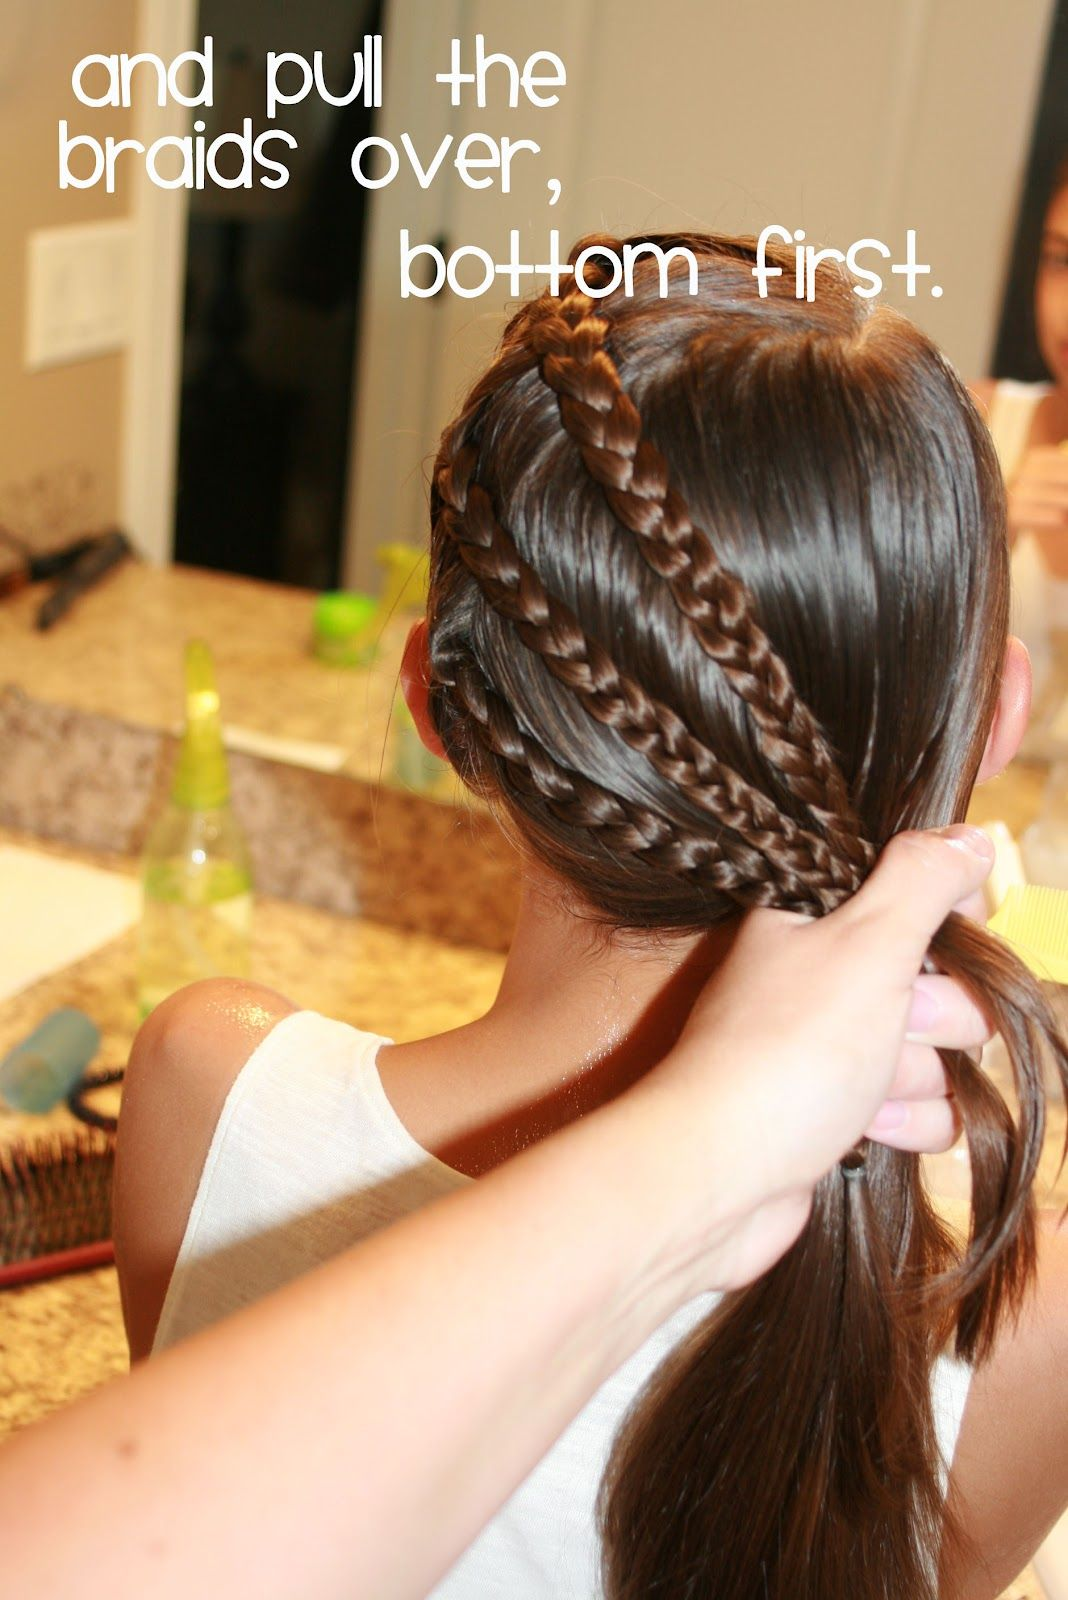 Cute girly hair blog i tried this and all my friends really liked